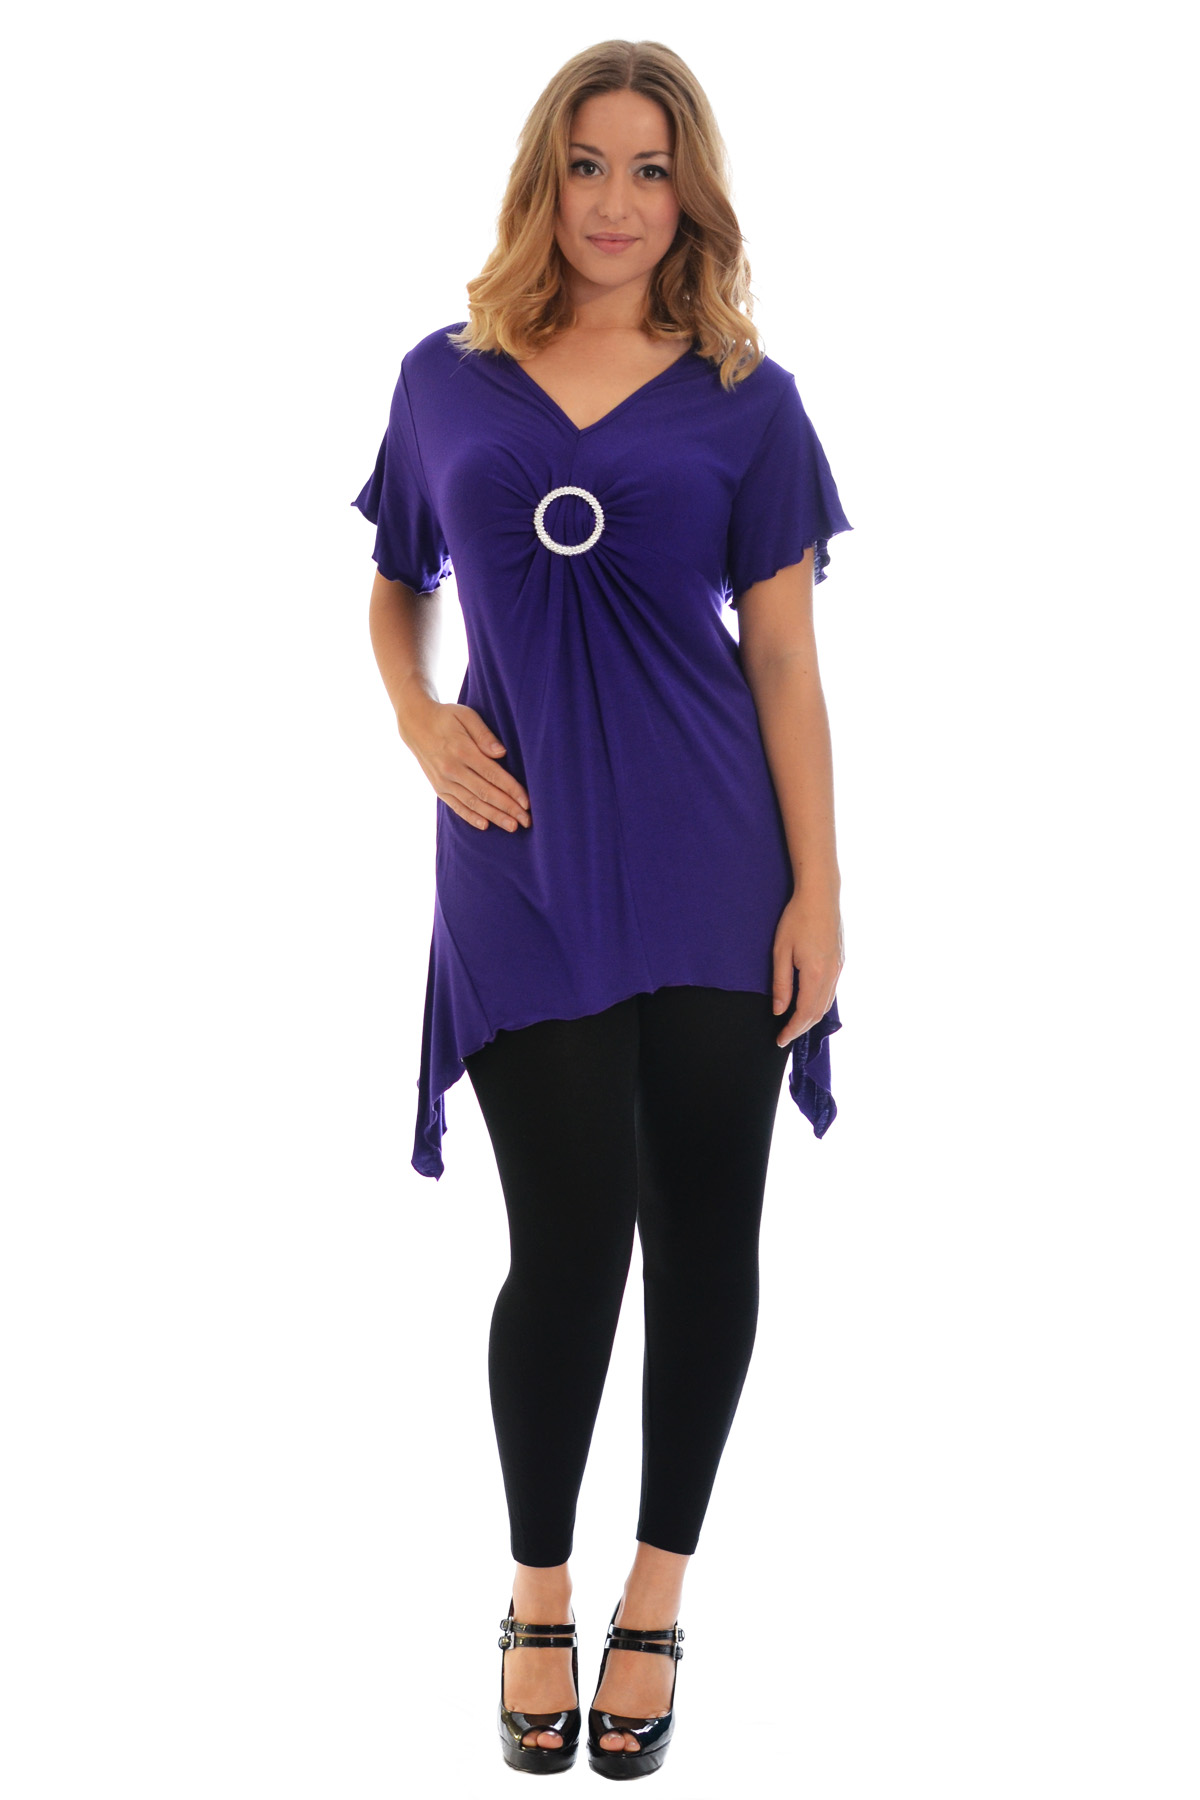 New-Womens-Plus-Size-Top-Ladies-T-Shirt-Buckle-Stud-A-Line-Asymmetric-Nouvelle thumbnail 21